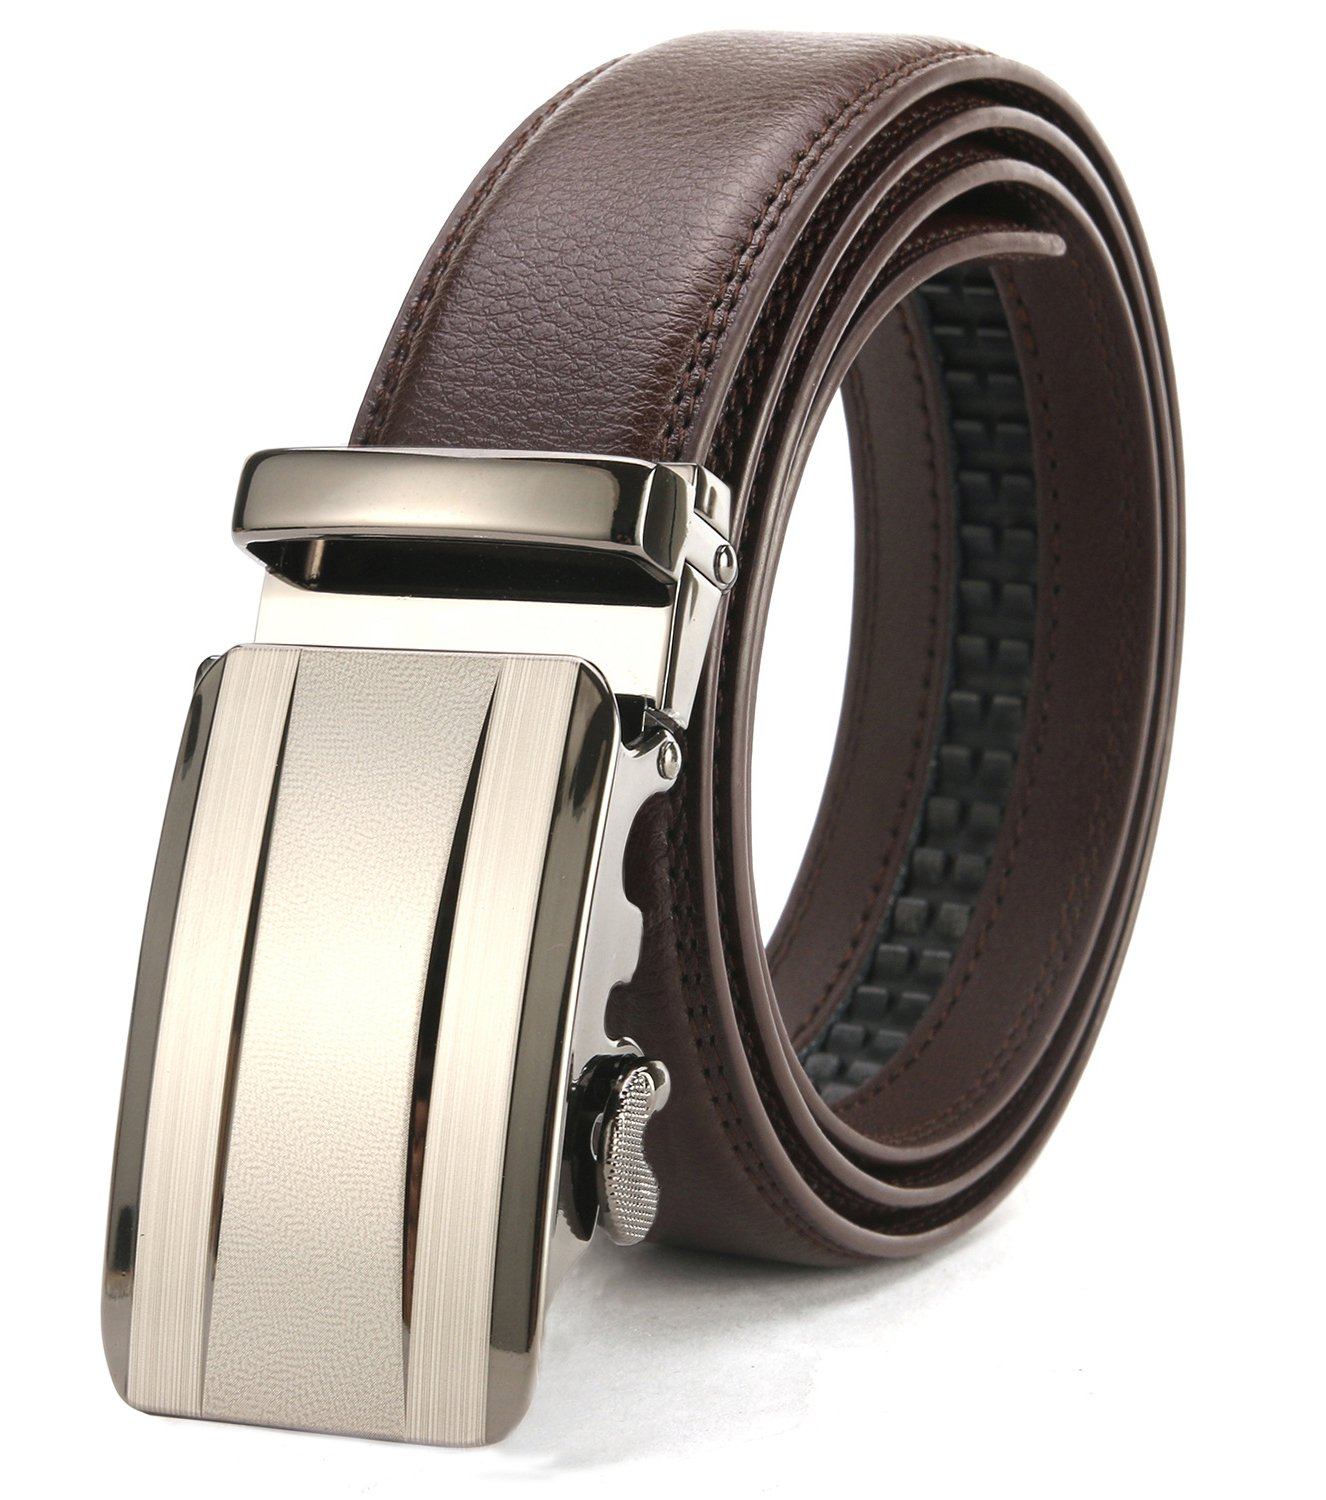 ITIEZY Men's Belt Business Automatic Sliding Buckle Leather Belts Brown 125mm